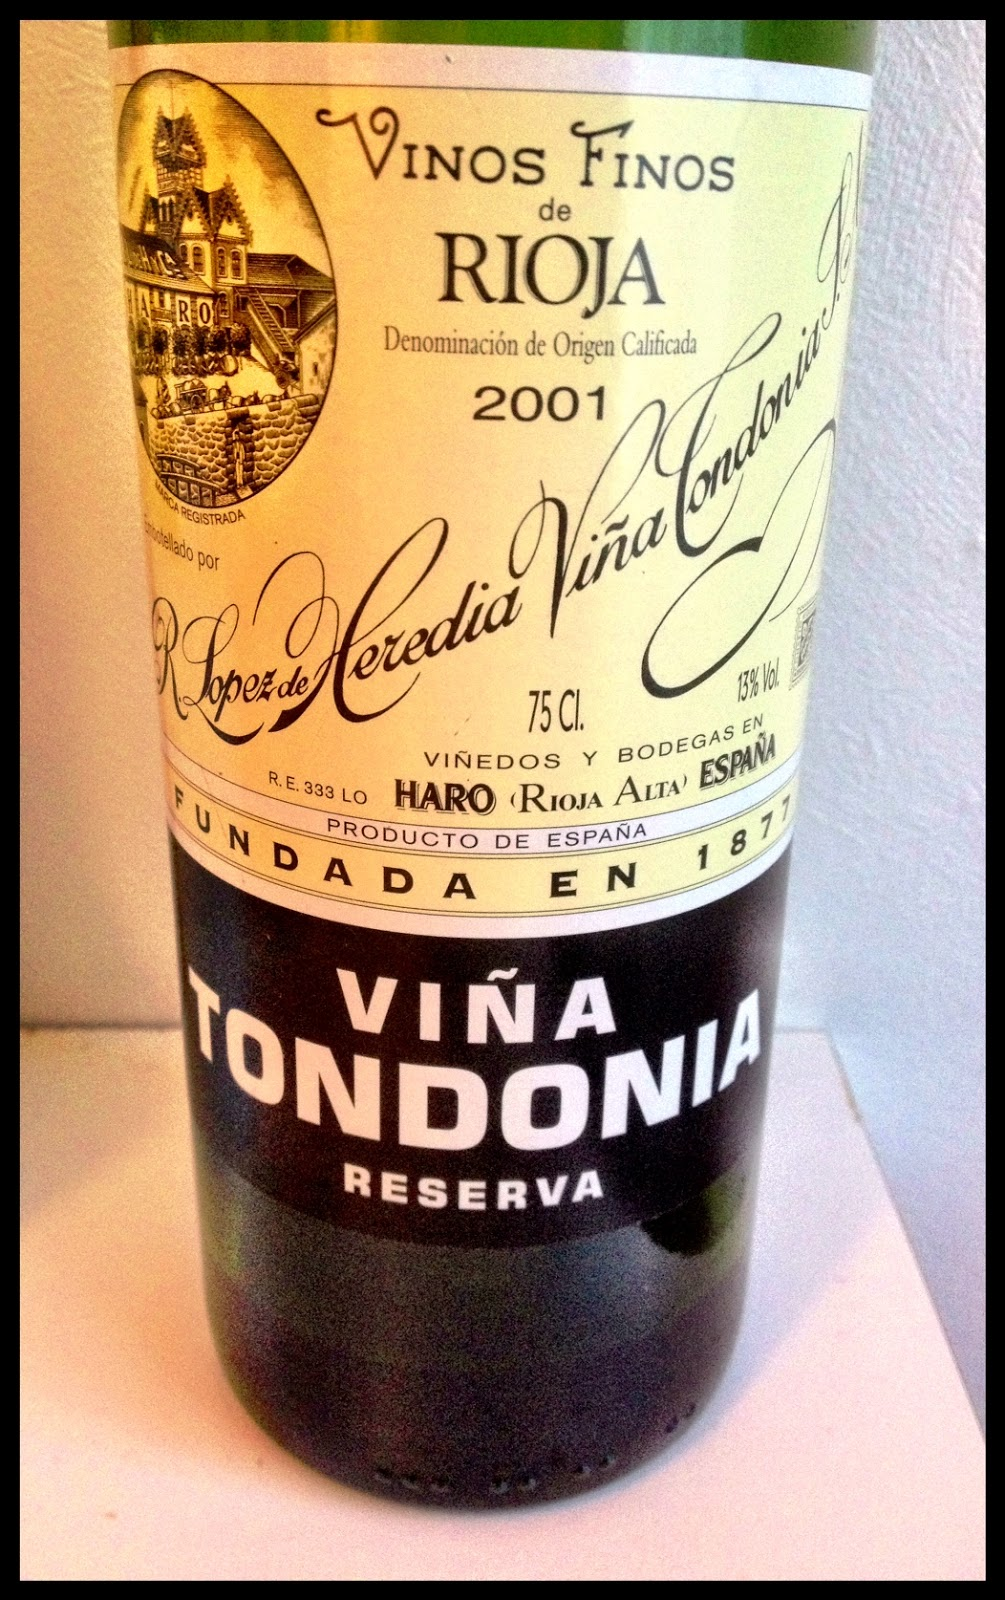 Tasting note on the 2001 Lopez de Heredia Rioja Vina Tondonia Reserva